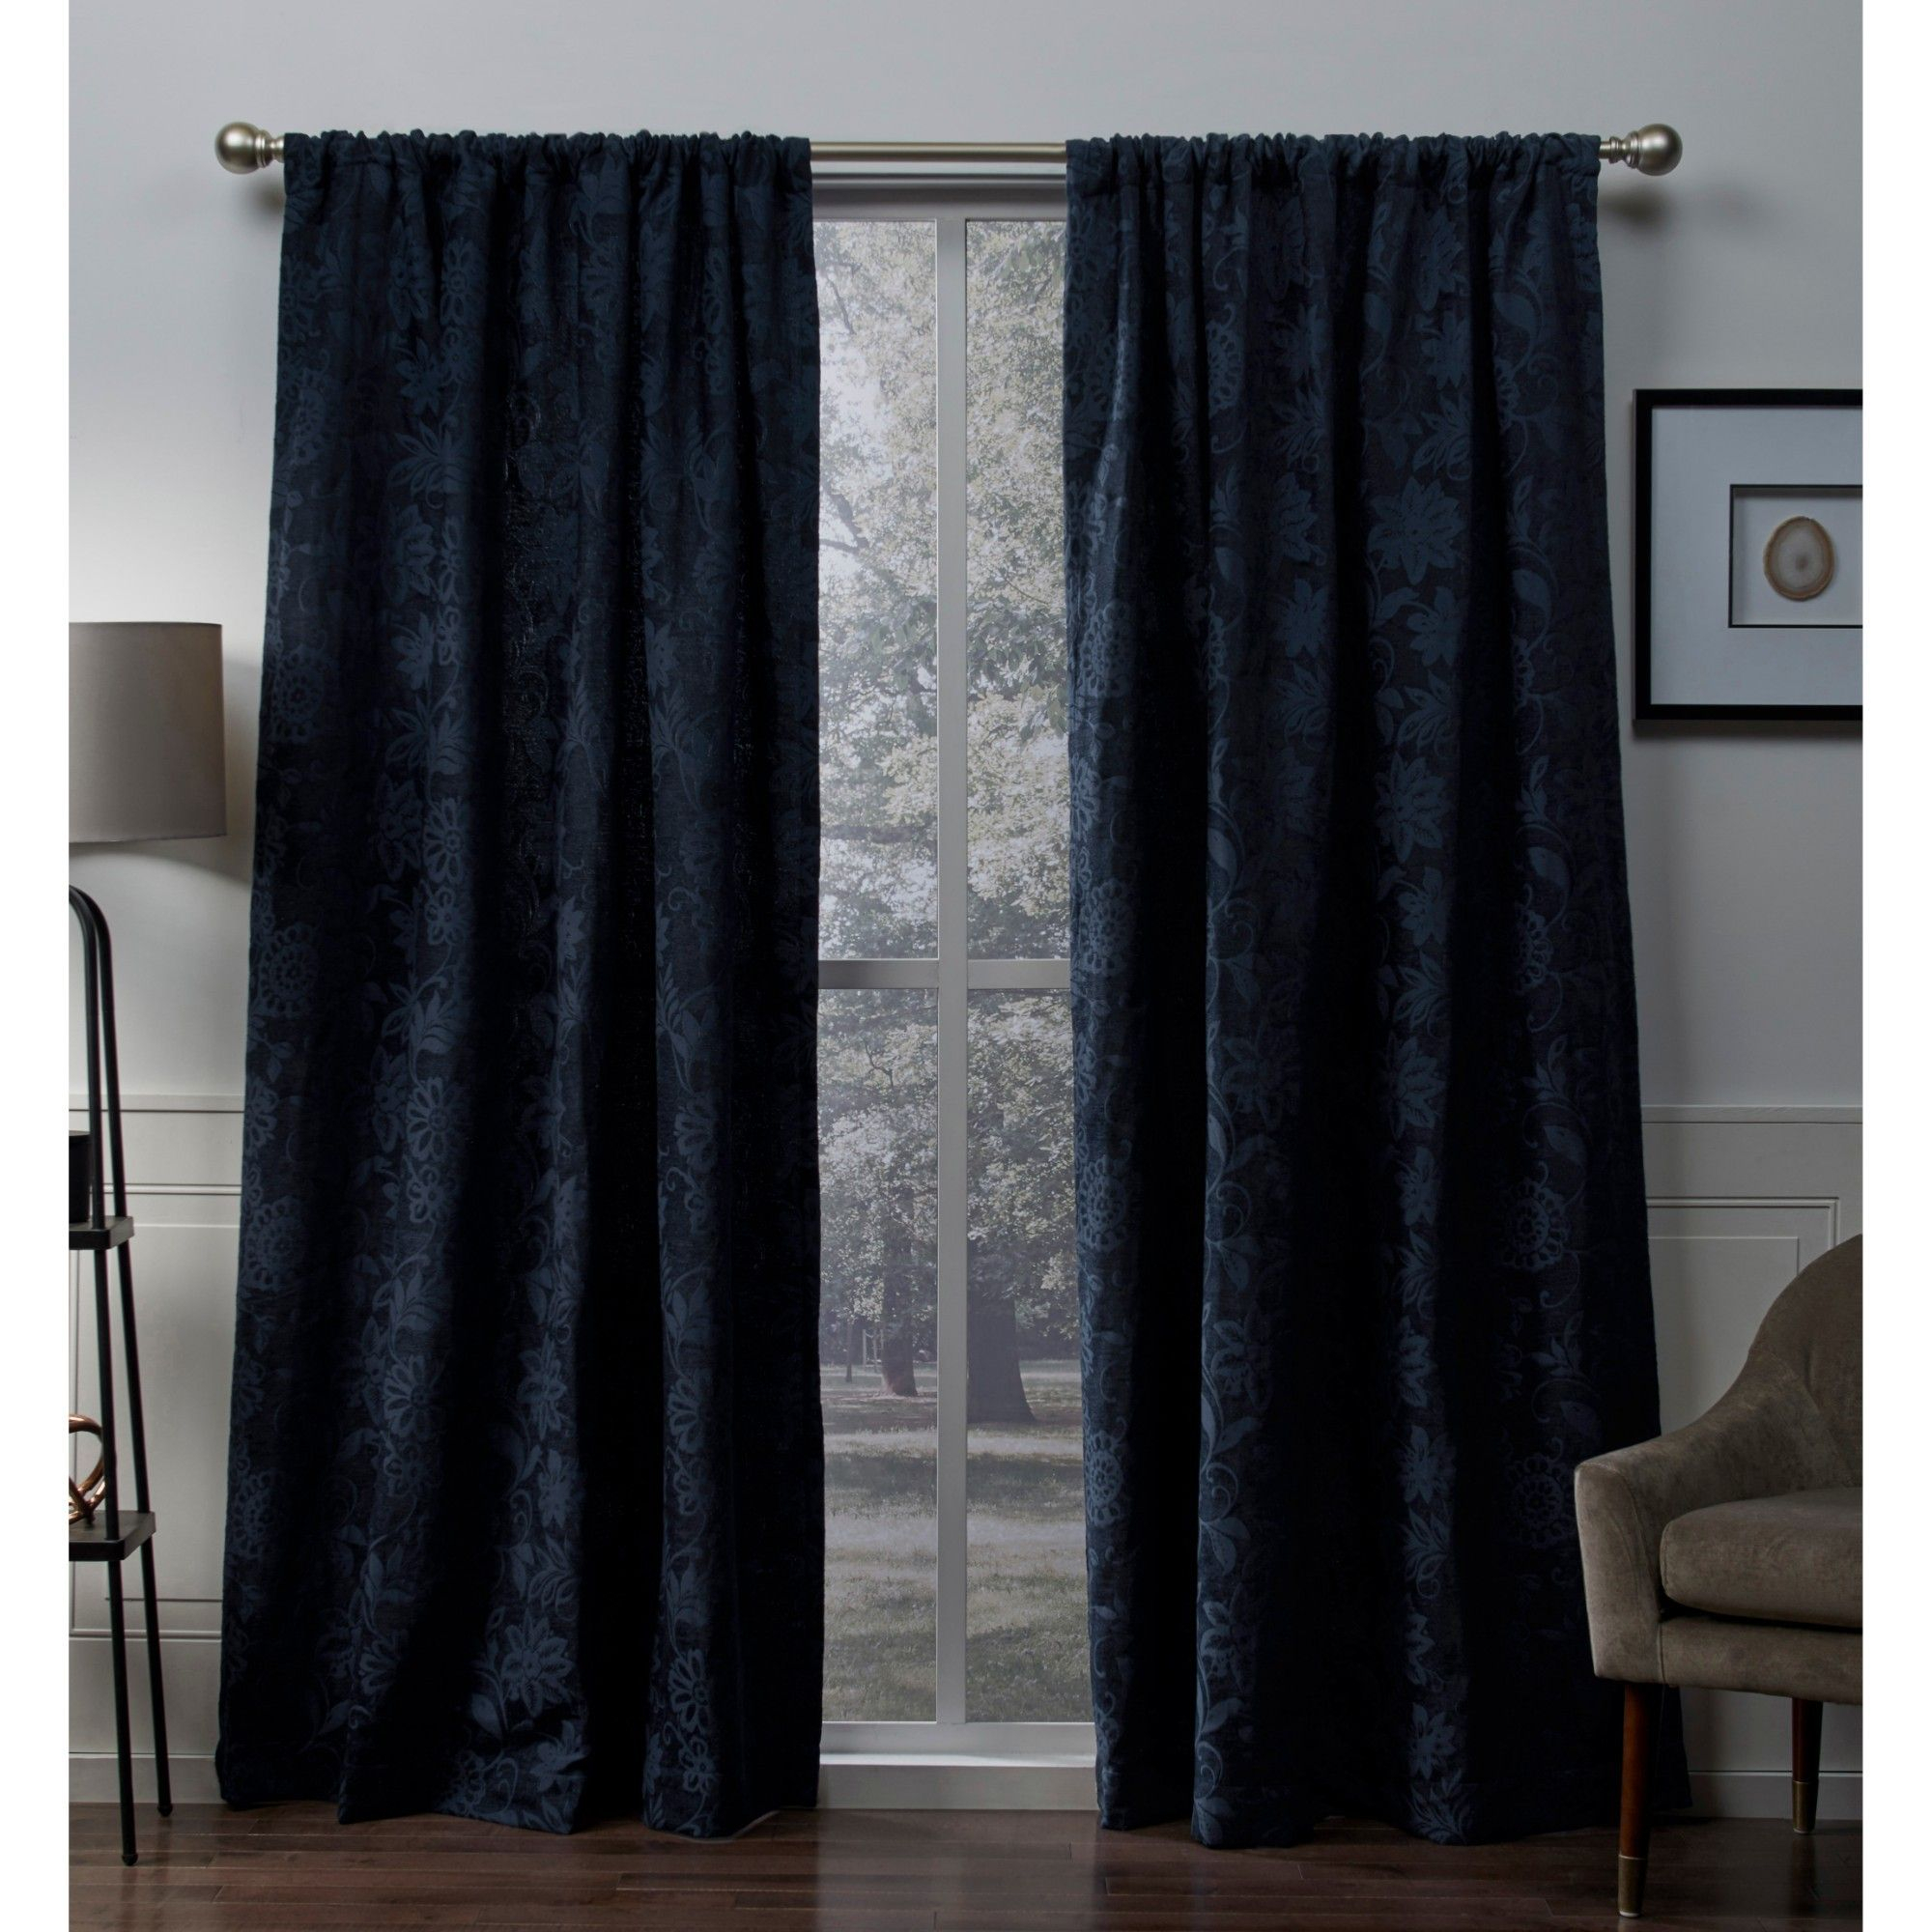 Elle Heavyweight Floral Scroll Chenille Jacquard Room in Floral Pattern Room Darkening Window Curtain Panel Pairs (Image 8 of 20)